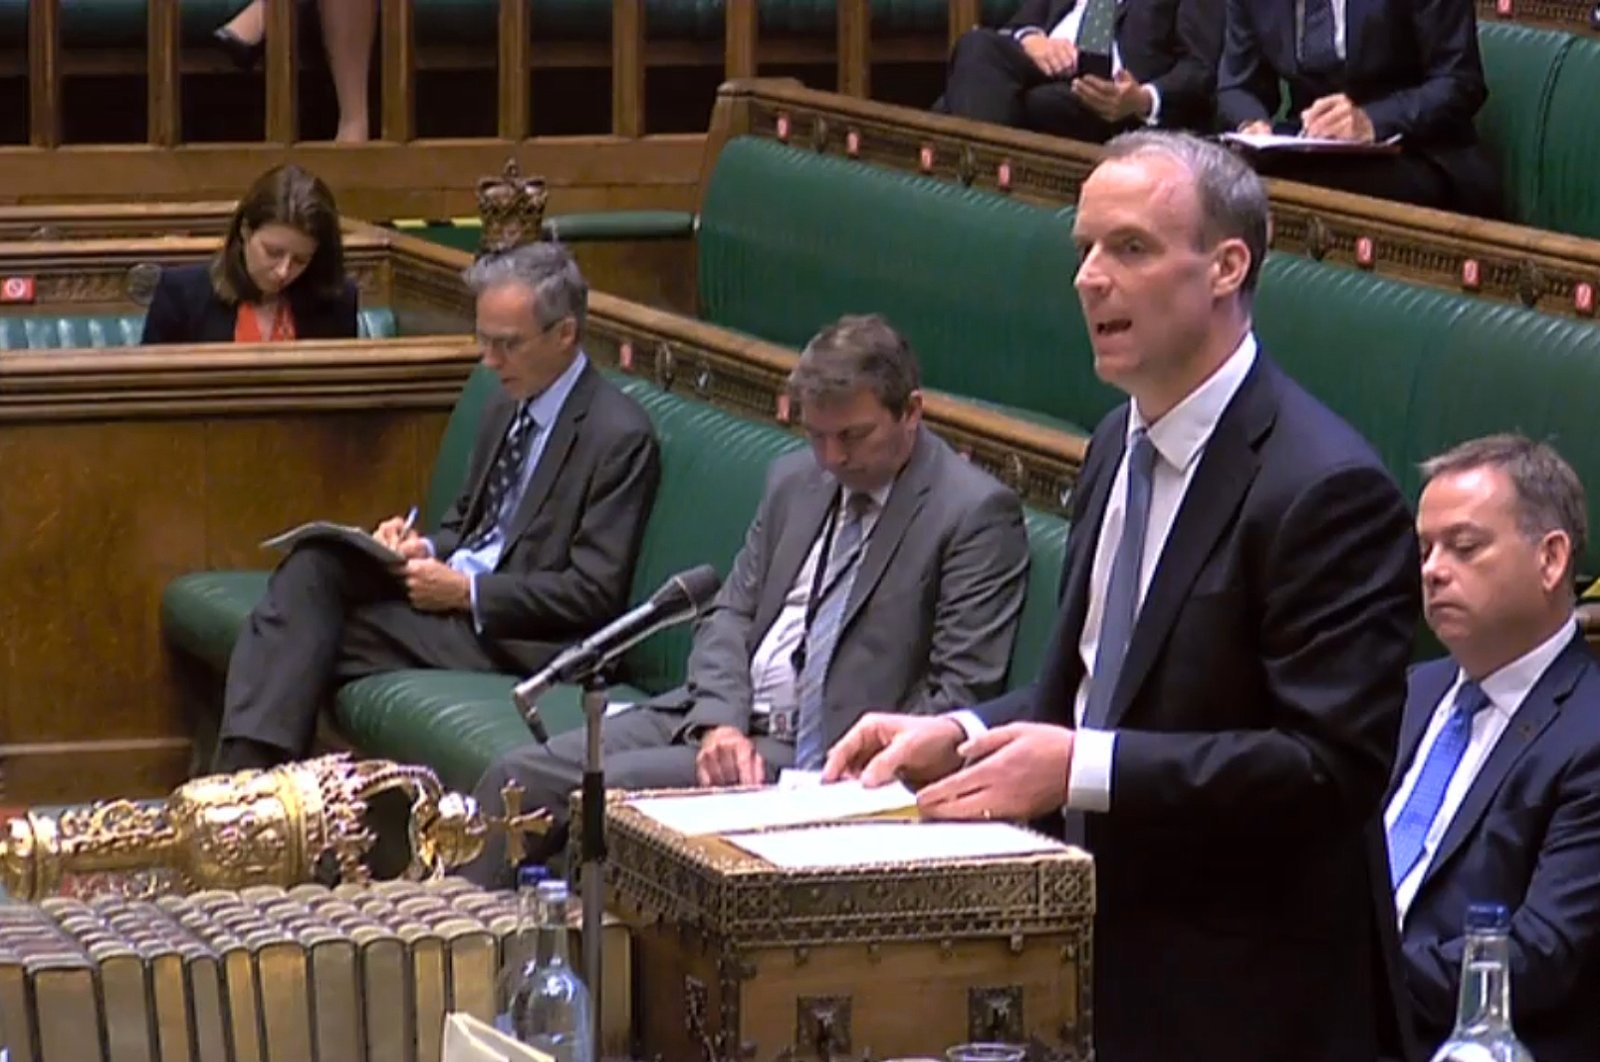 Britain's Foreign Secretary Dominic Raab makes a statement in the House of Commons in London, Britain, July 20, 2020. (AFP Photo)